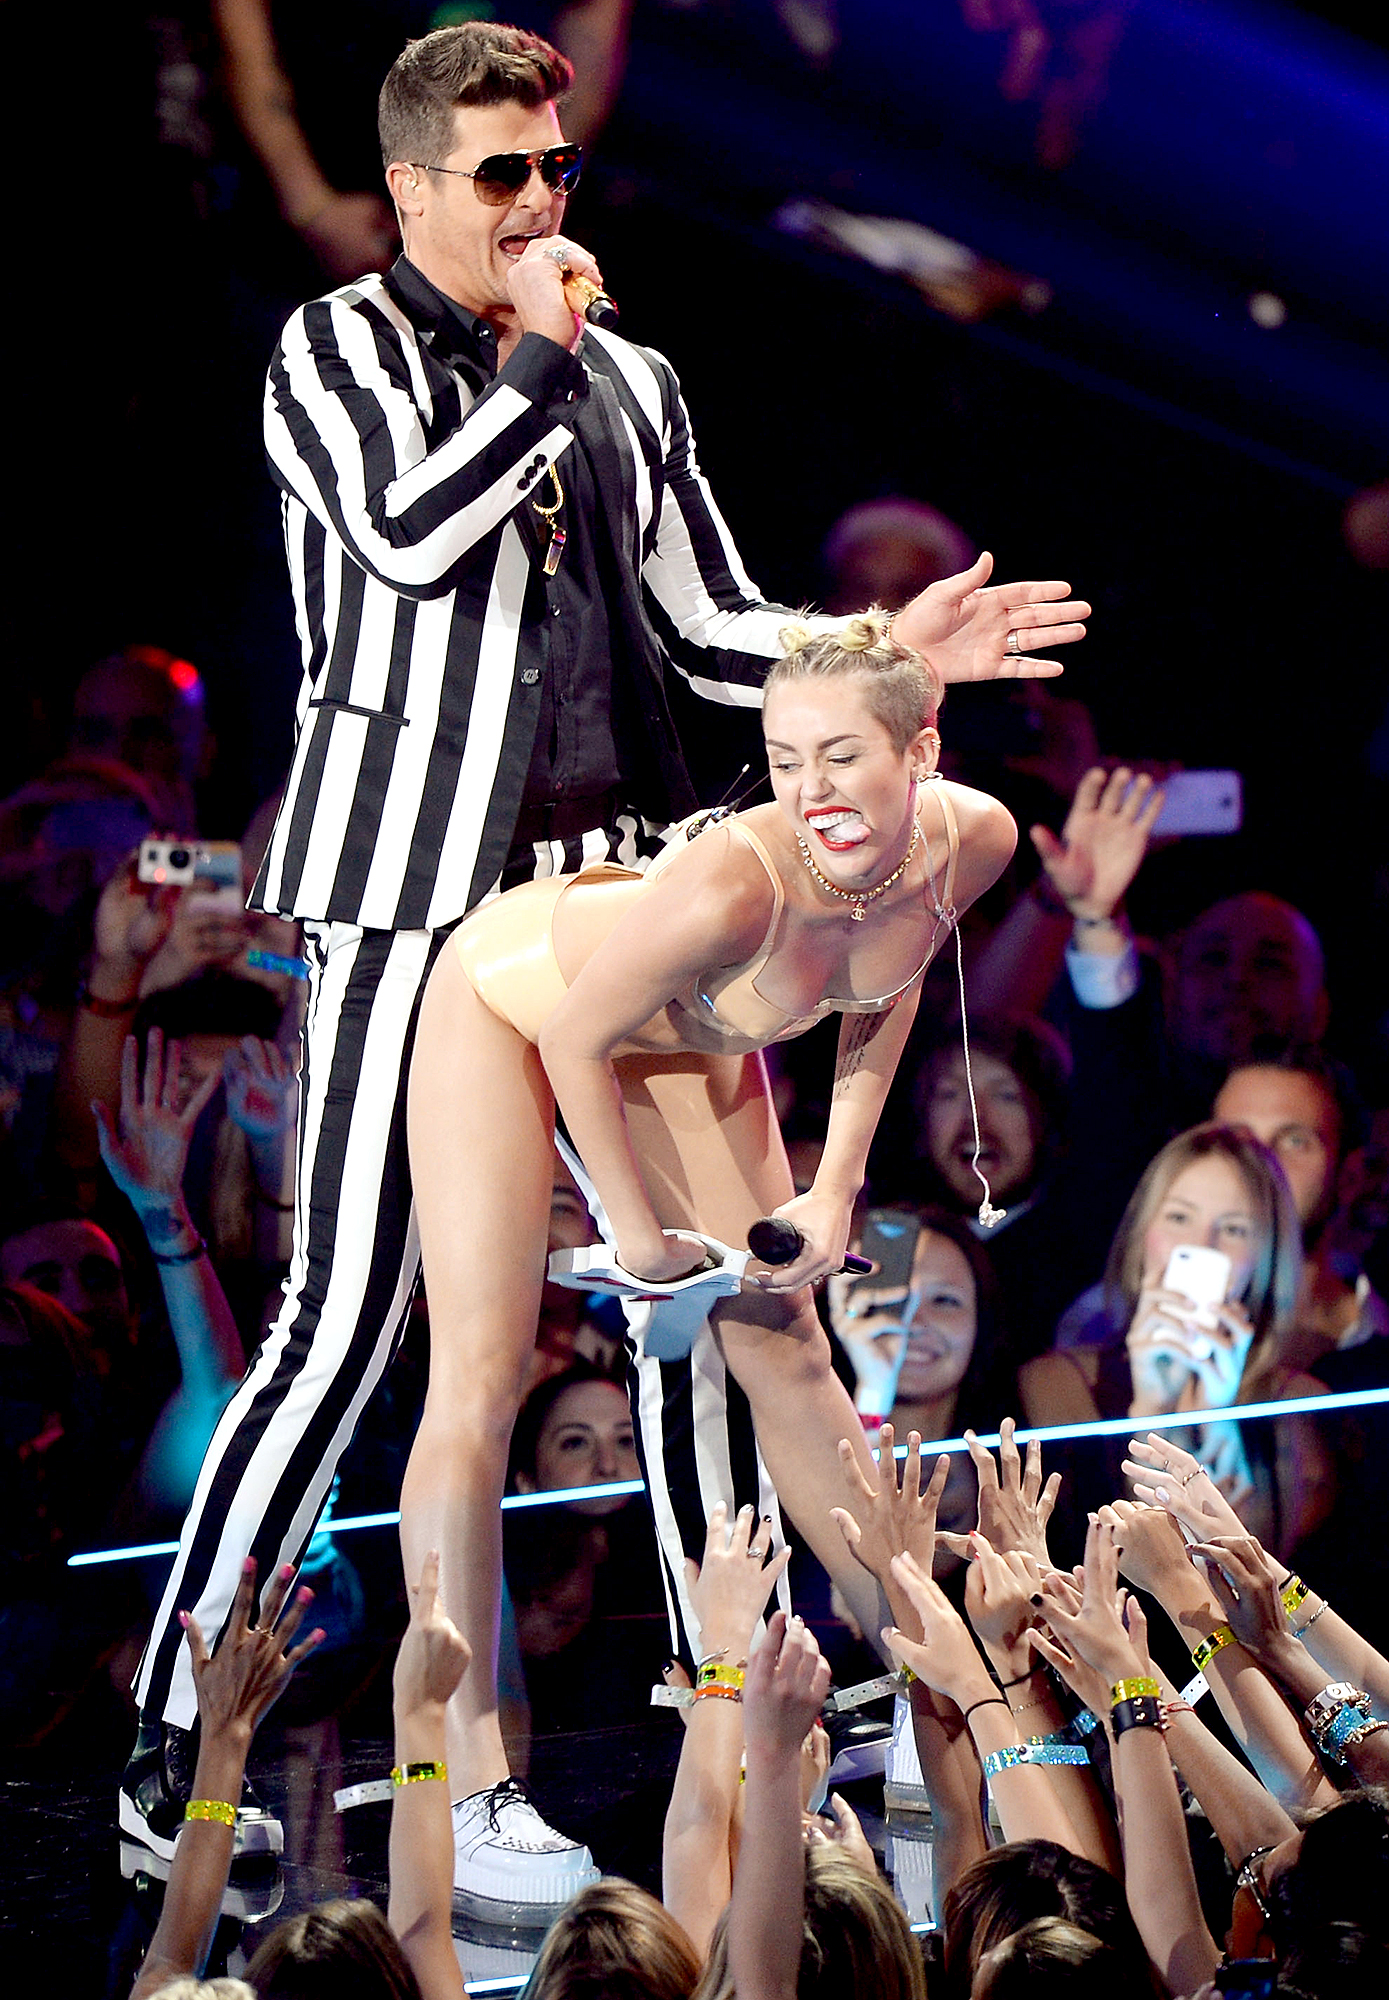 """miley-cyrus-robin-thicke - The Last Song actress made waves during her 2013 VMAs performance — in which she infamously twerked on Robin Thicke — and she had a perfectly good explanation for her antics. """" I was an adult when I was supposed to be a kid ,"""" she said in the October 2013 issue of Harper's Bazaar ."""